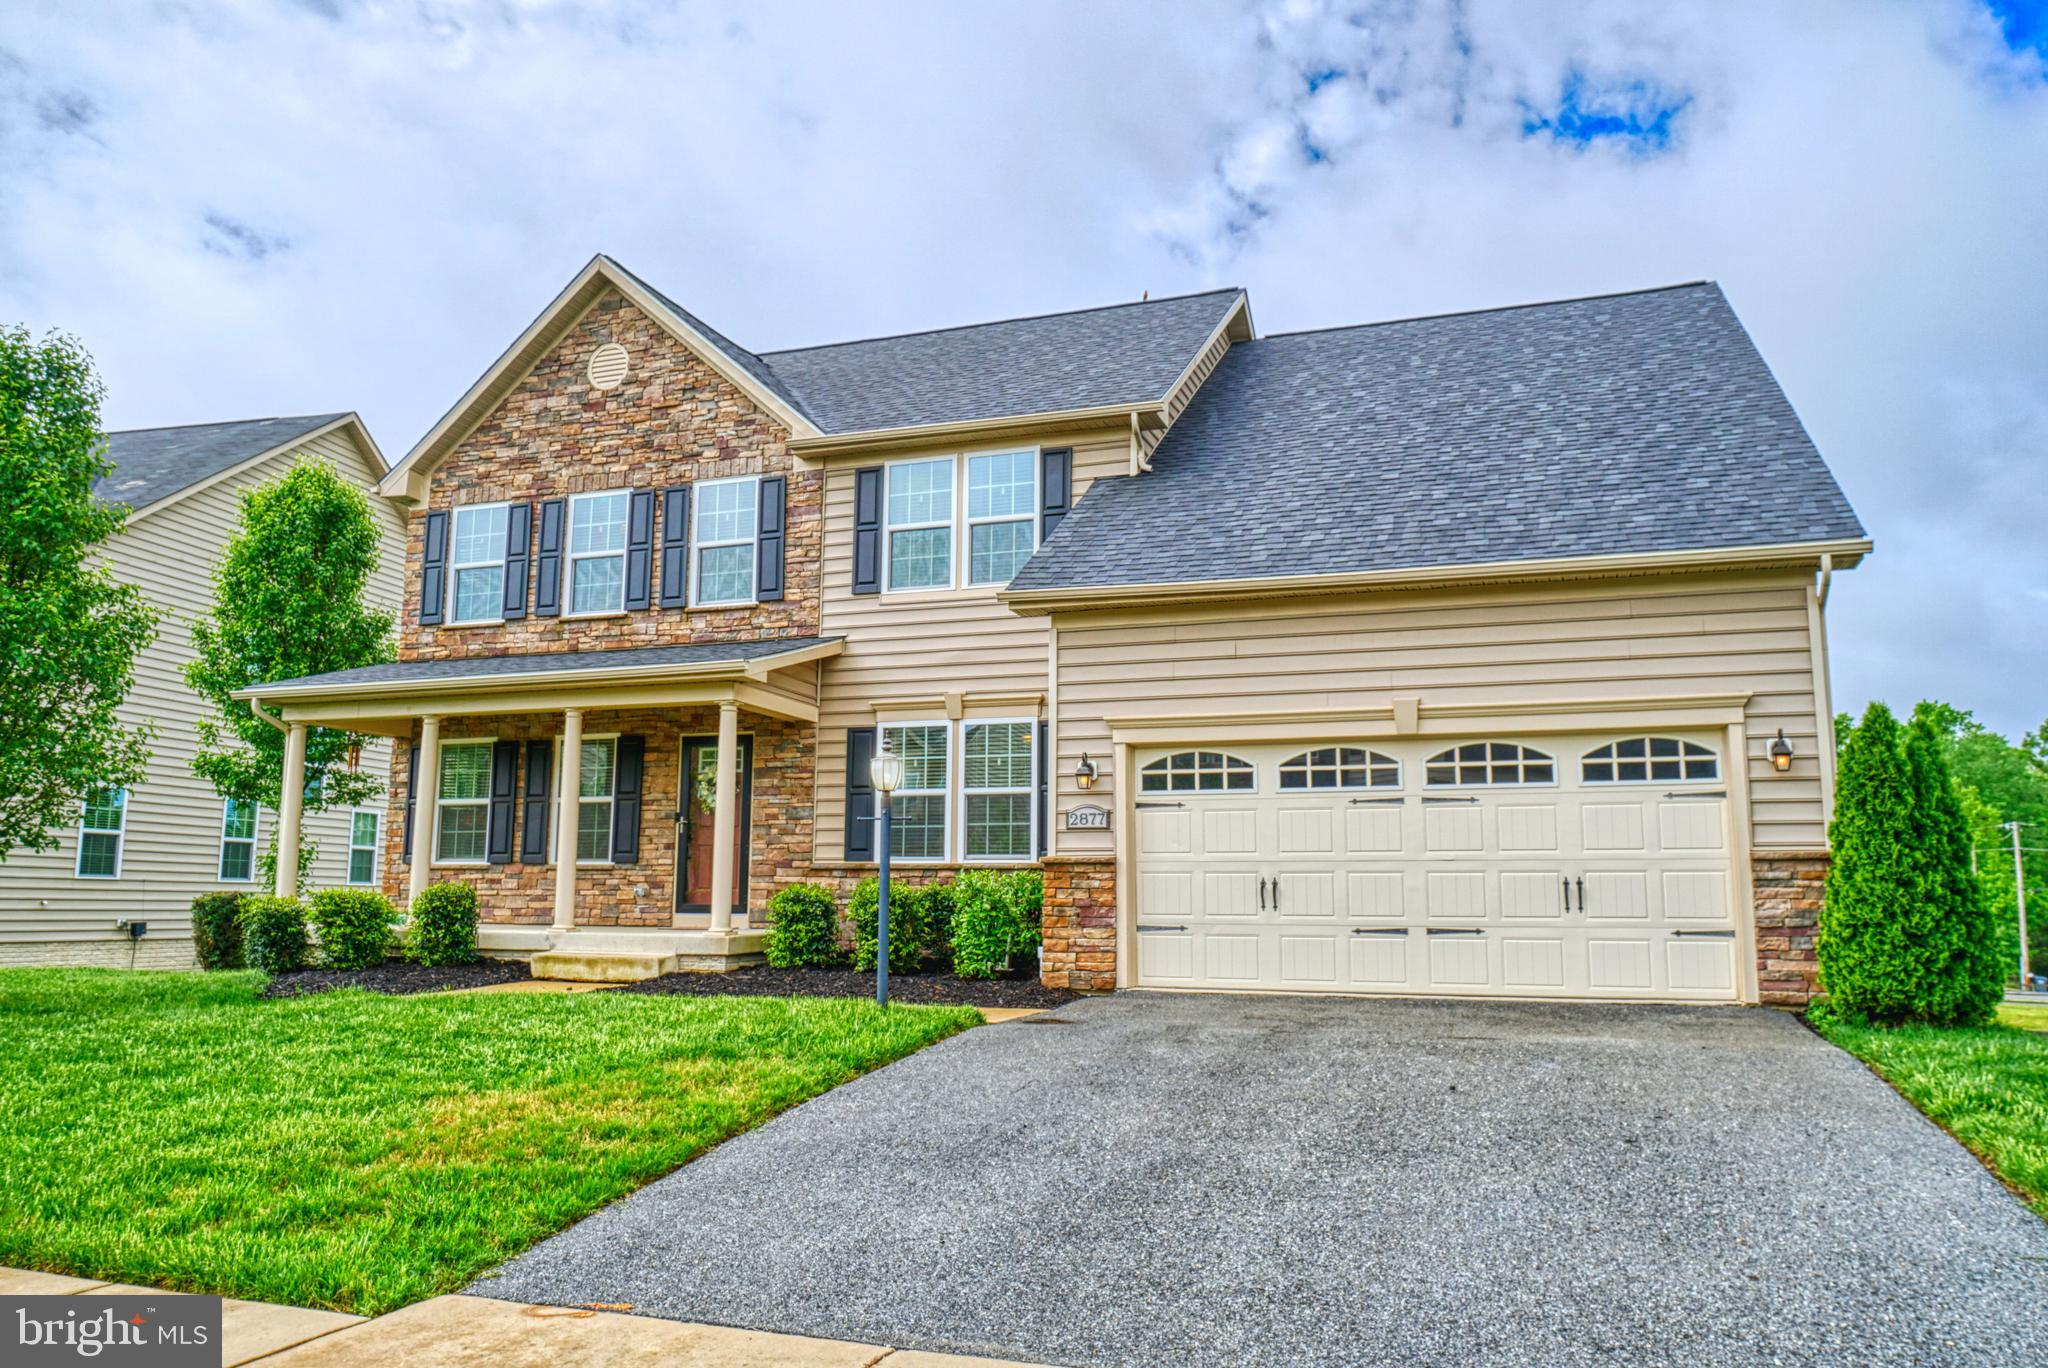 Welcome to 2877 Sweetbay! A well kept 2014 Ryan home in sought after Autumn Hills.  Enjoy 5 bedrooms